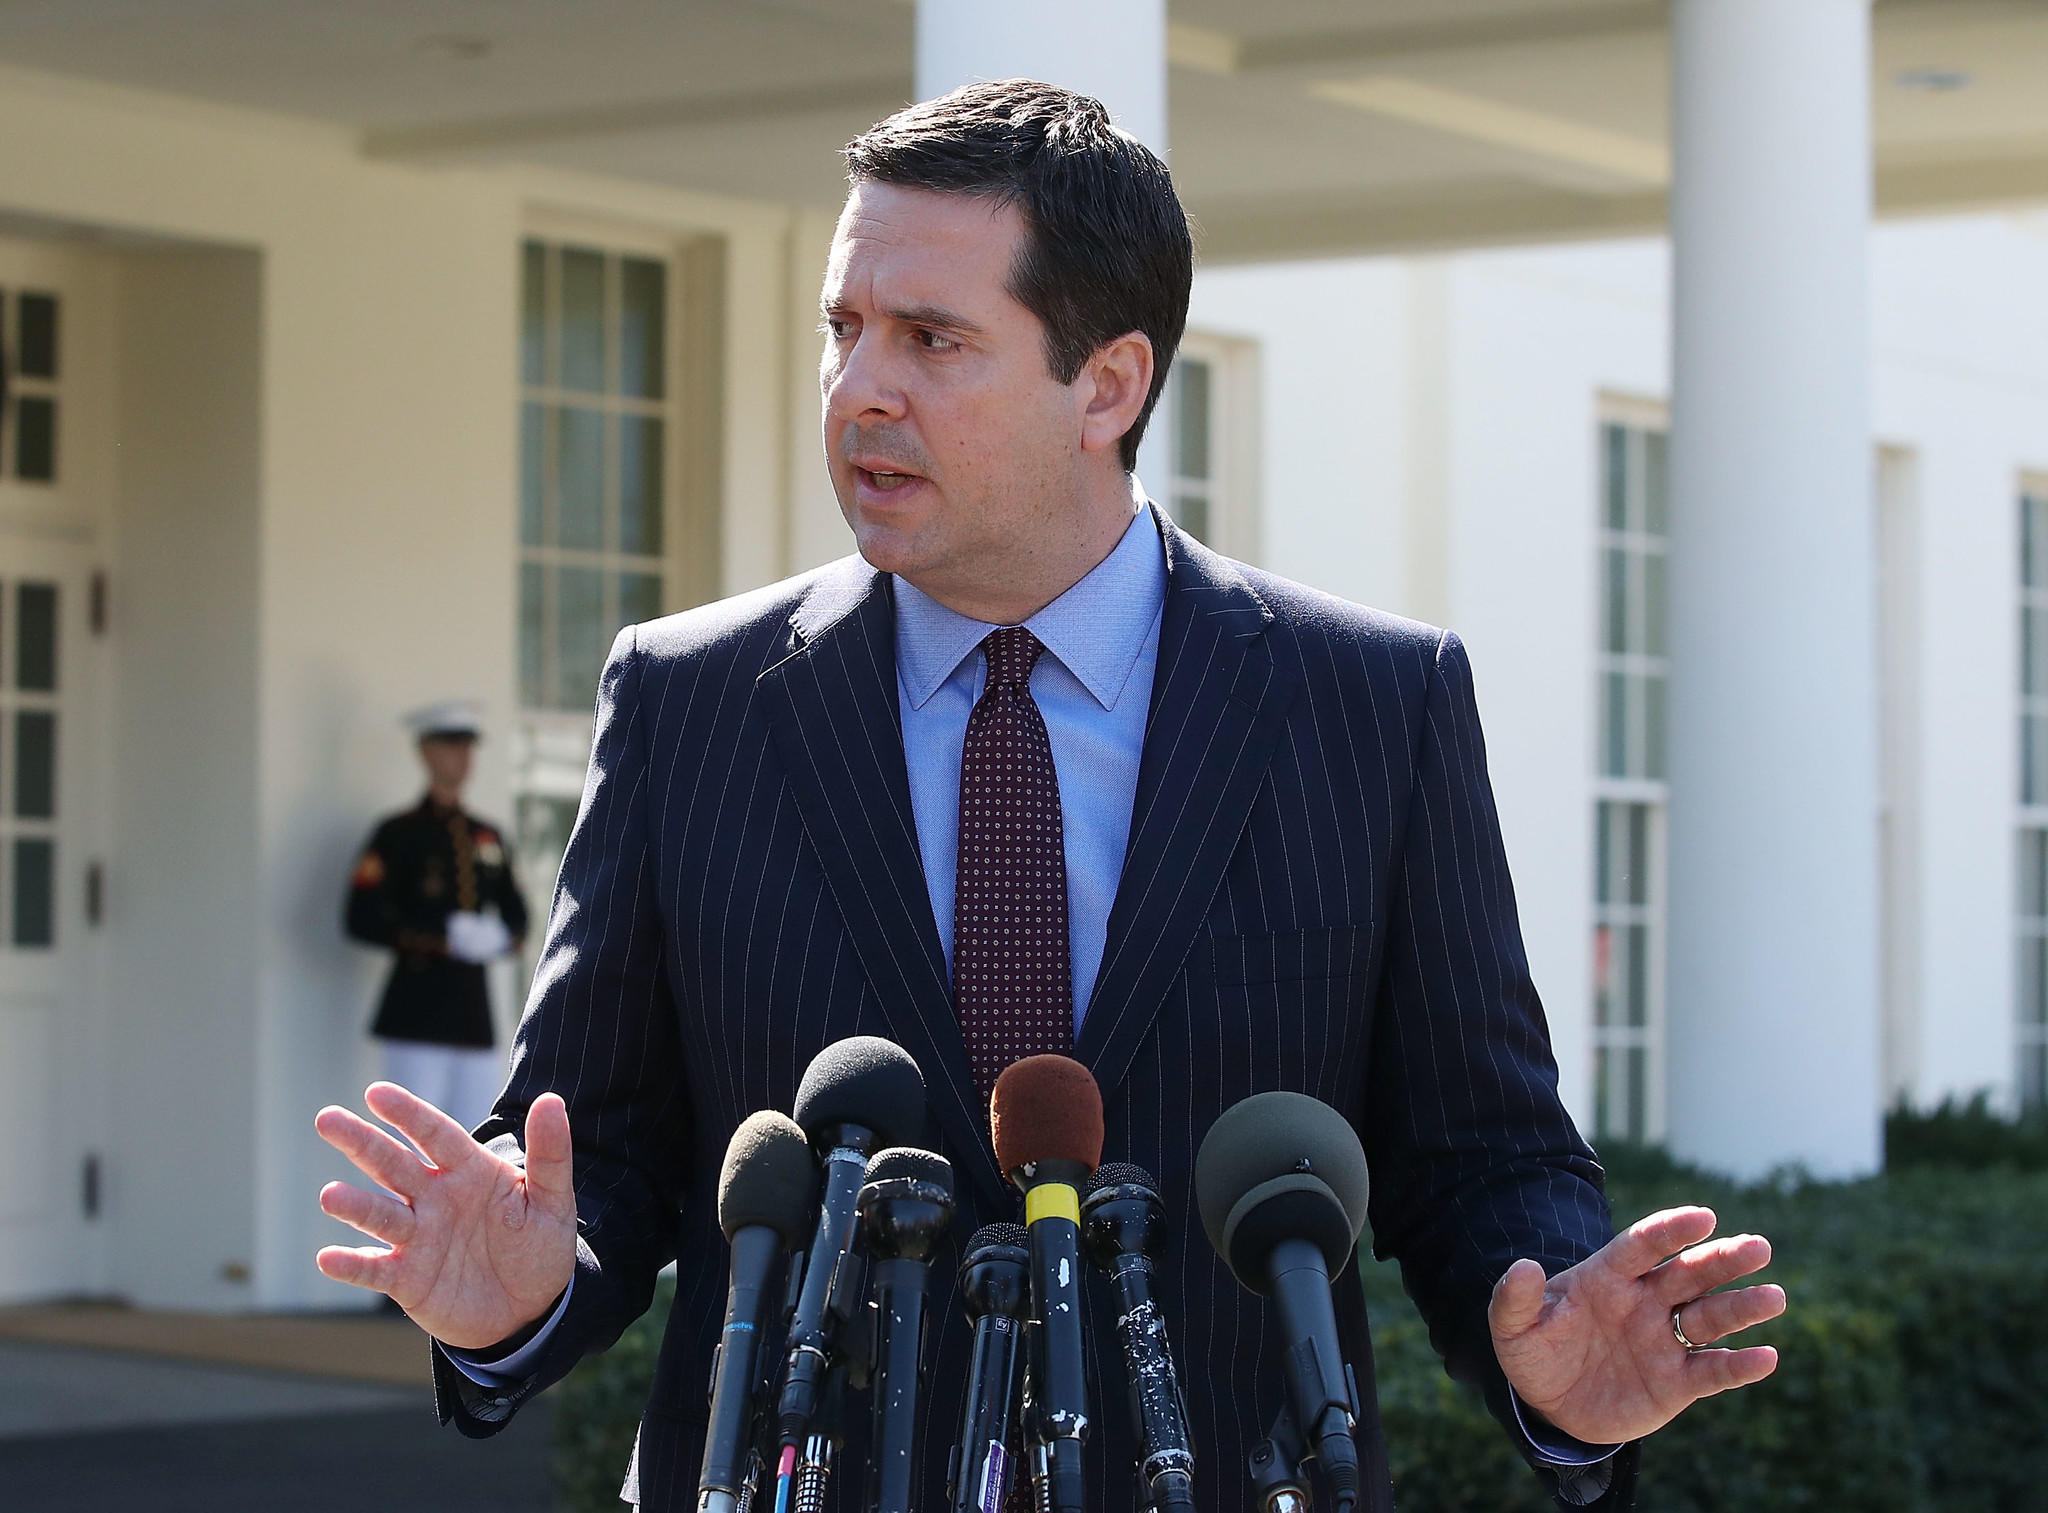 House Intelligence Committee Chairman Devin Nunes speaks to reporters after a meeting at the White House on March 22.